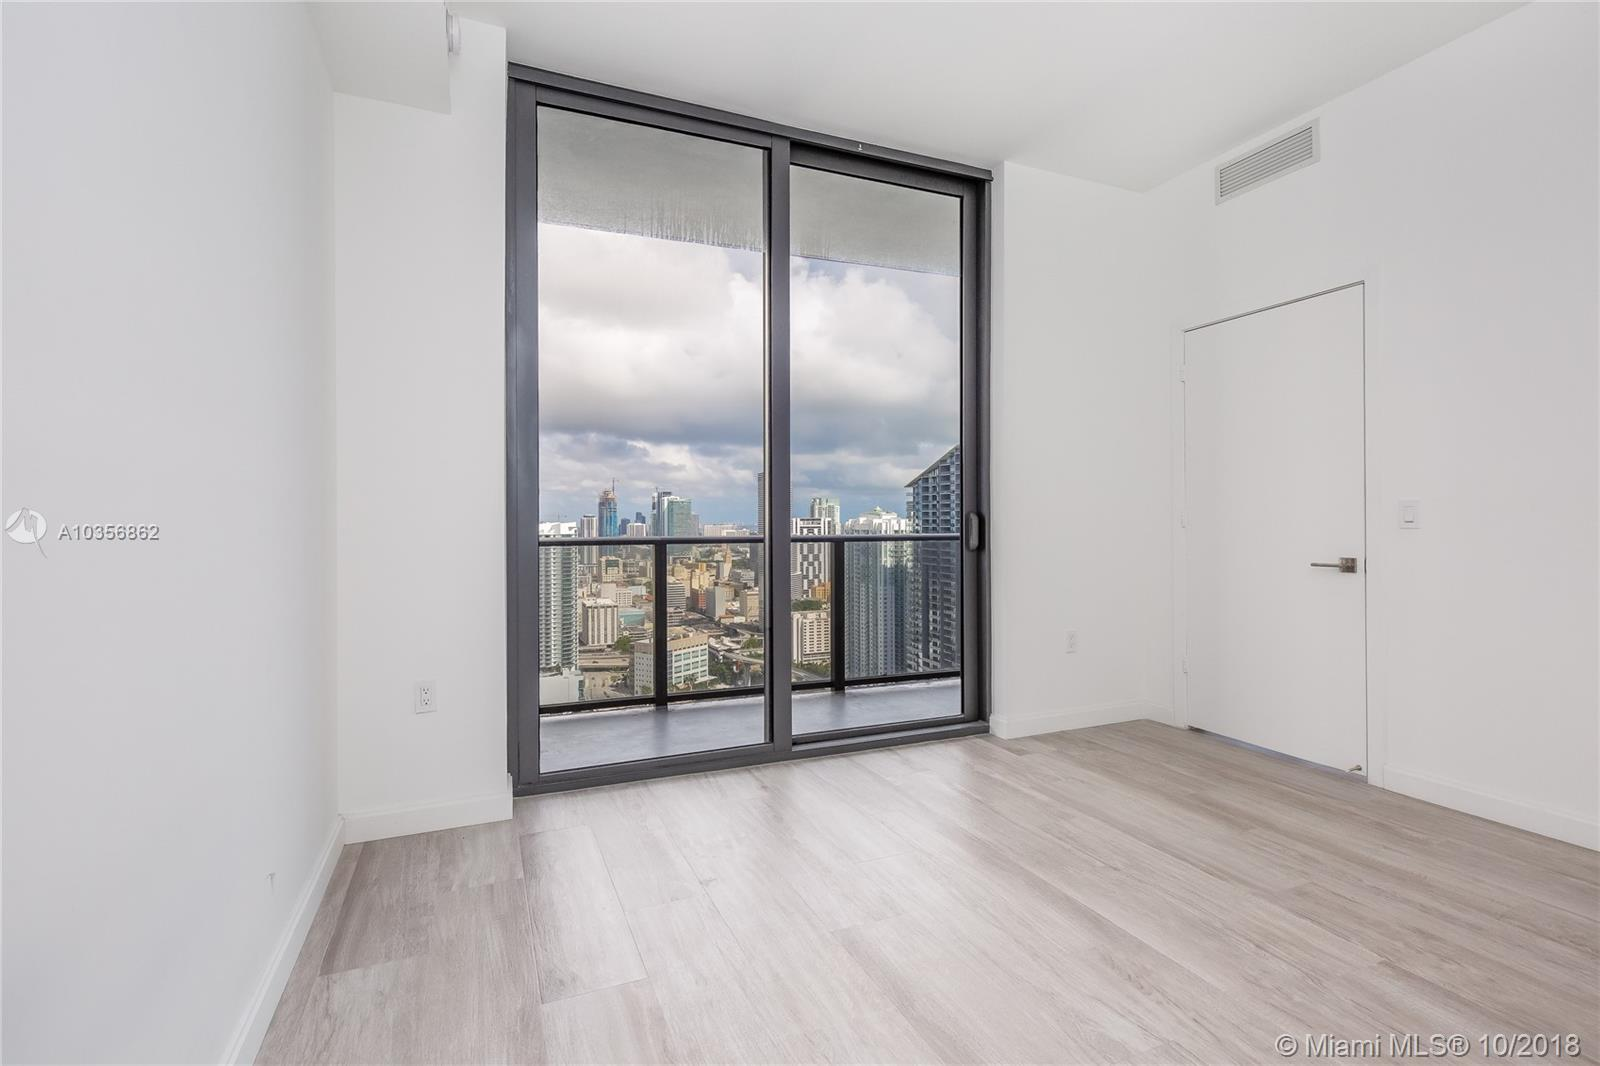 55 SW 9th St, Miami, FL 33130, Brickell Heights West Tower #4101, Brickell, Miami A10356862 image #32